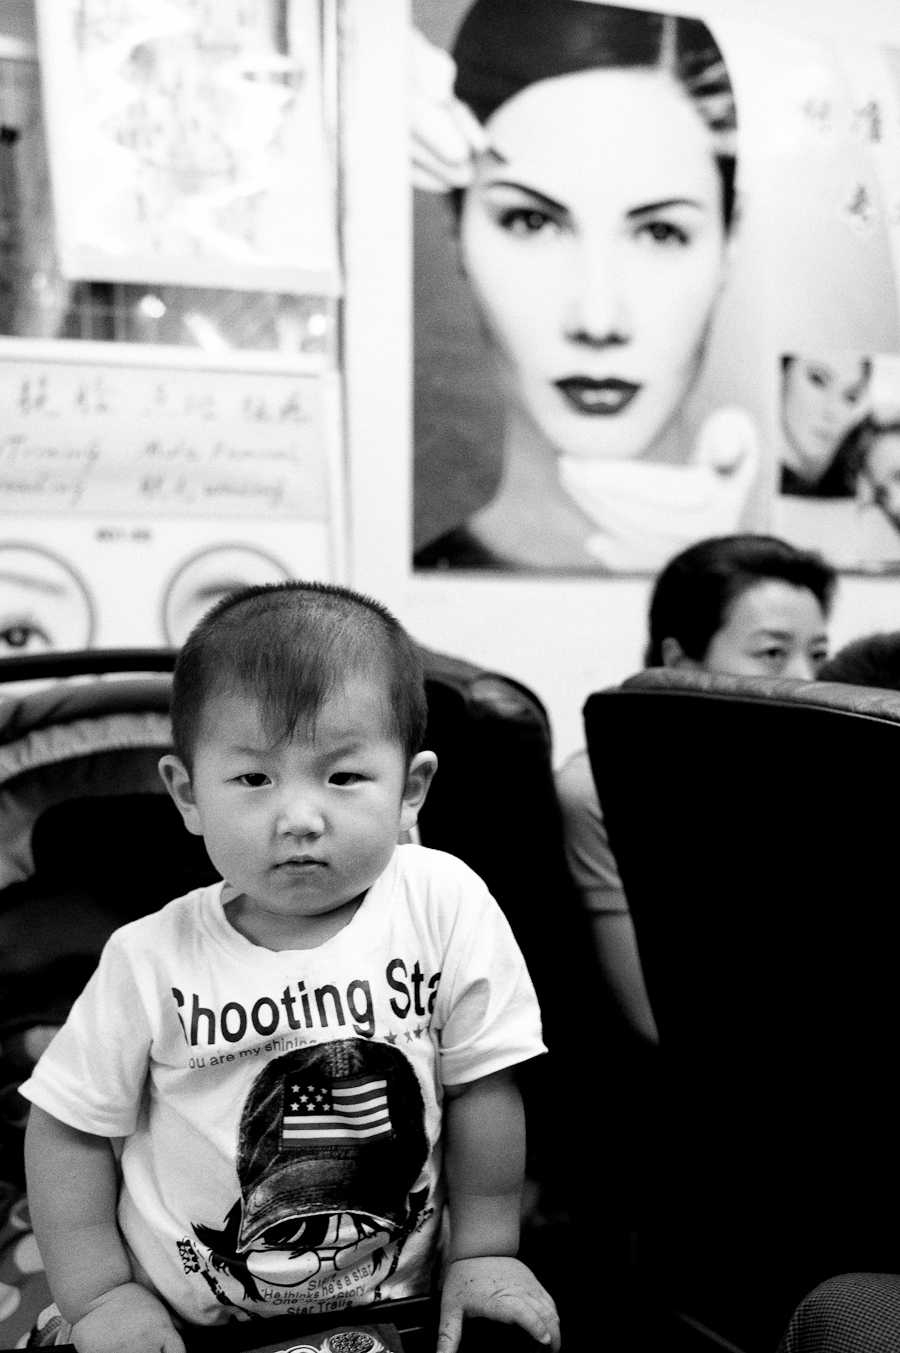 Kid, People's Park Complex, Chinatown, Singapore, 2011